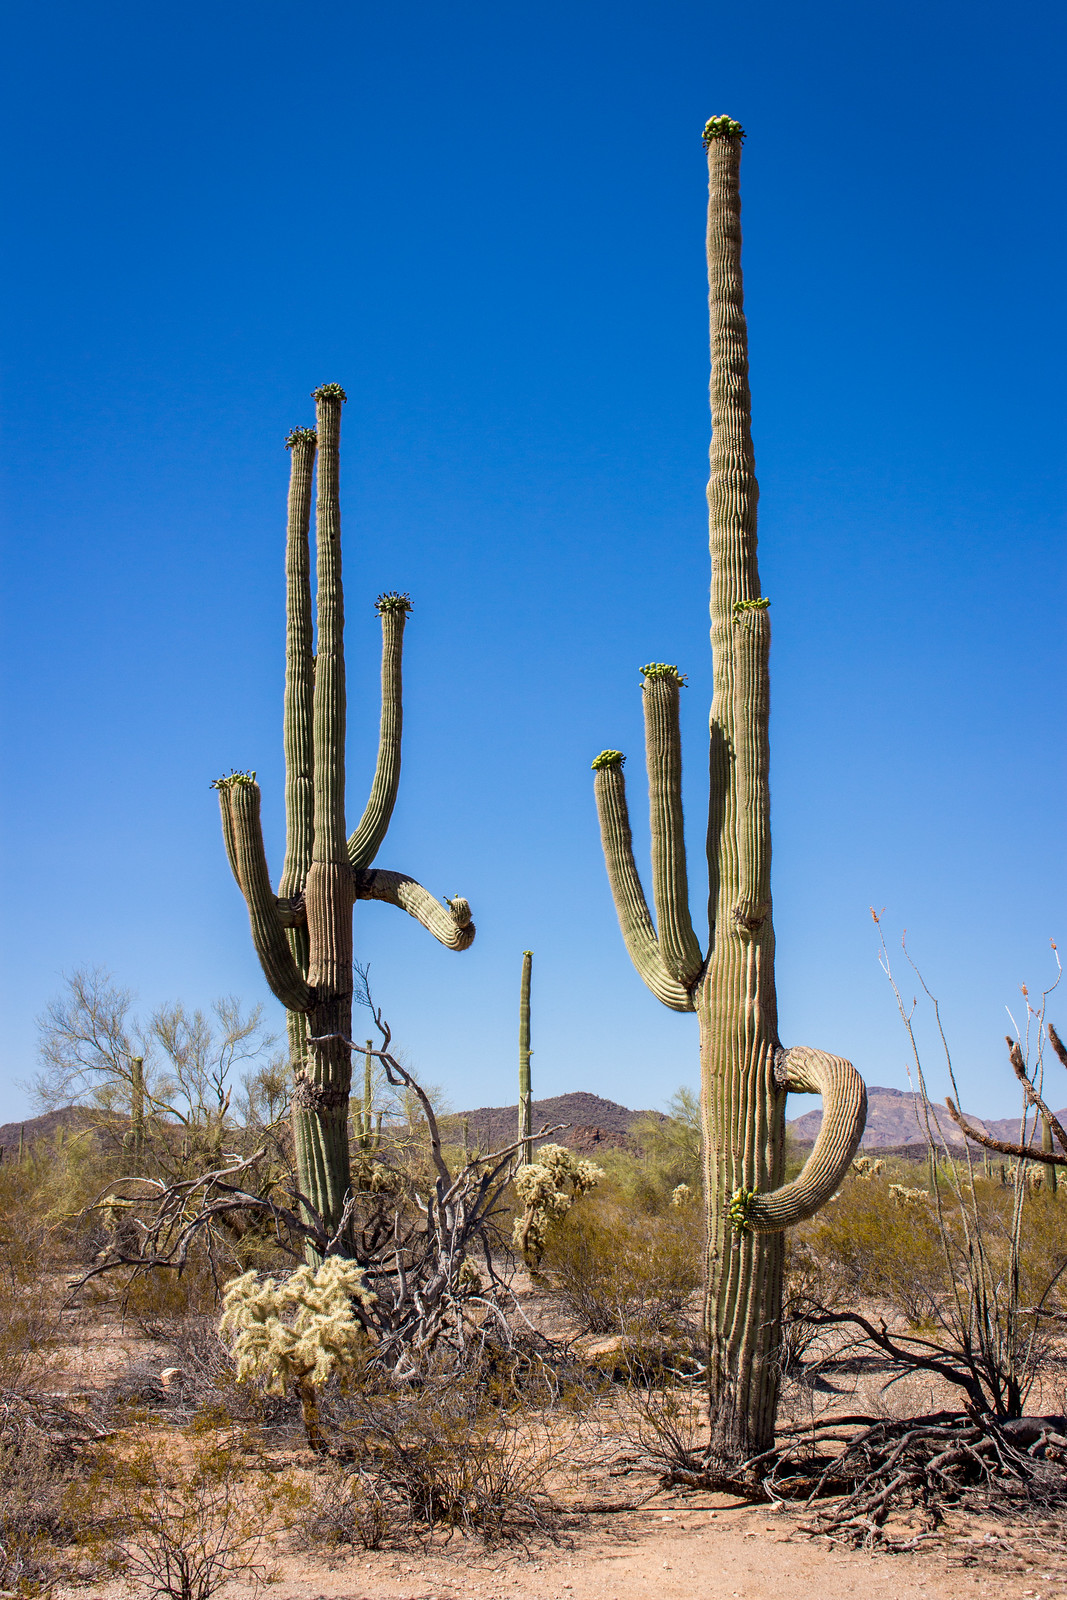 Two tall saguaro cactus with white flowers on their crowns